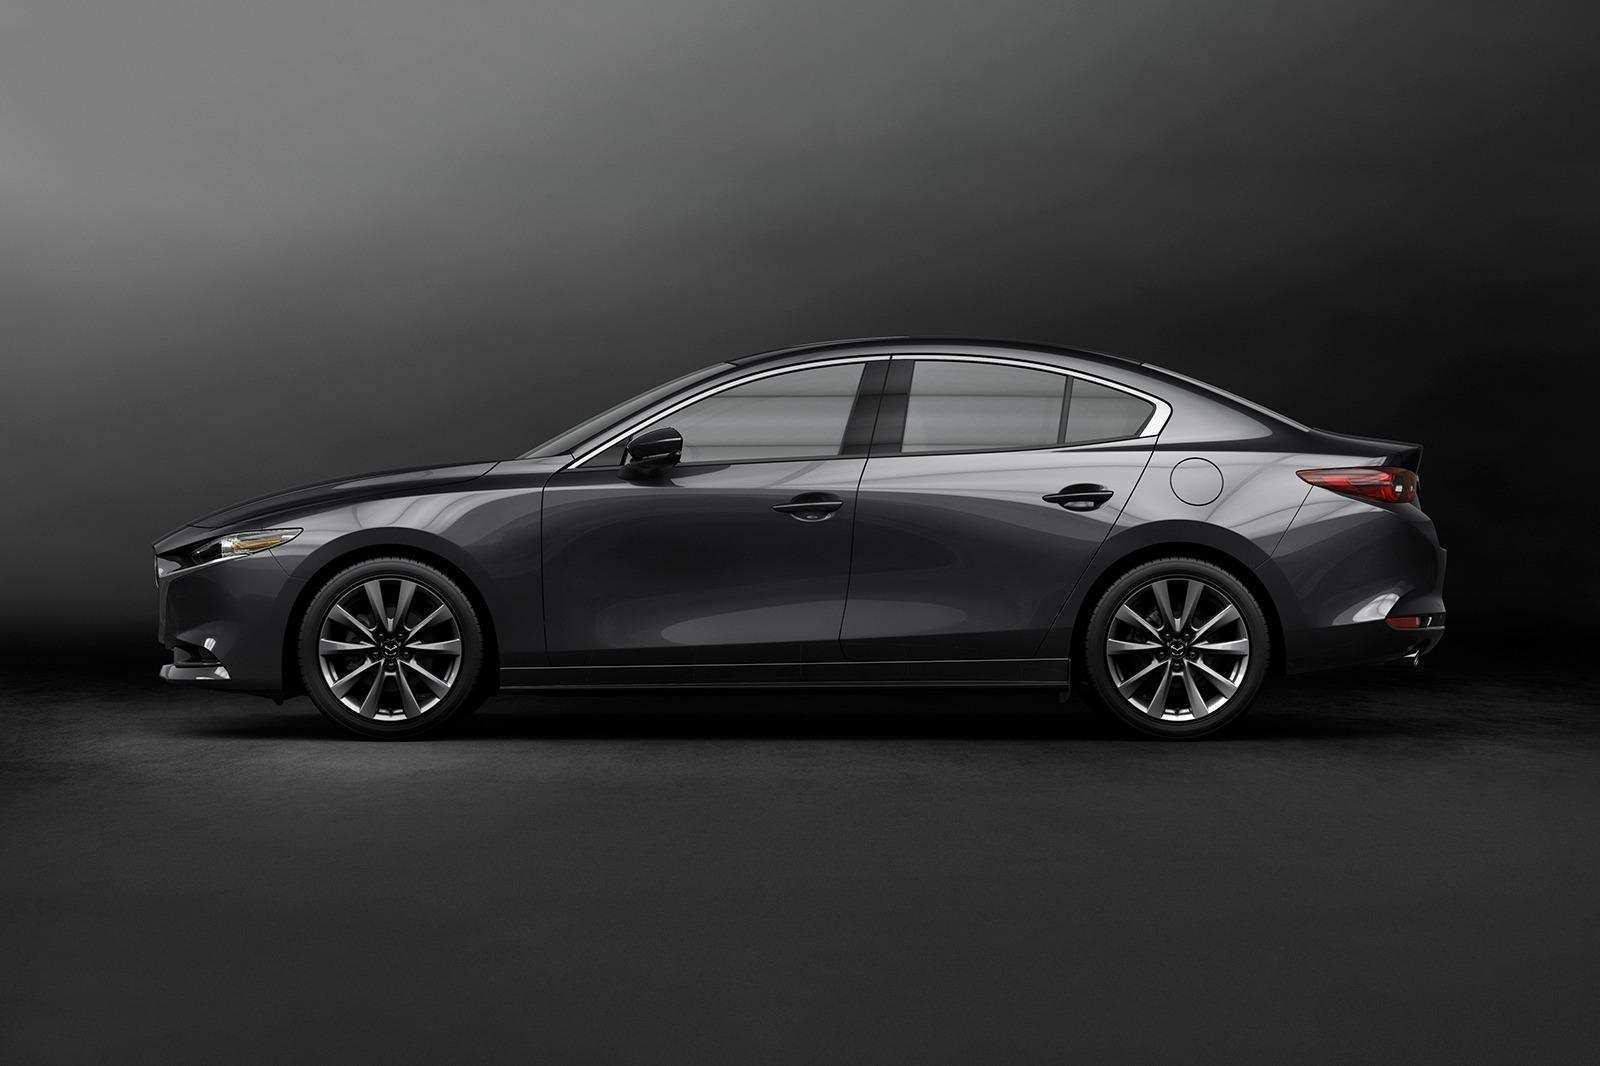 13 Great Best Mazda 3 2019 Price Release Date Price And Review Style with Best Mazda 3 2019 Price Release Date Price And Review